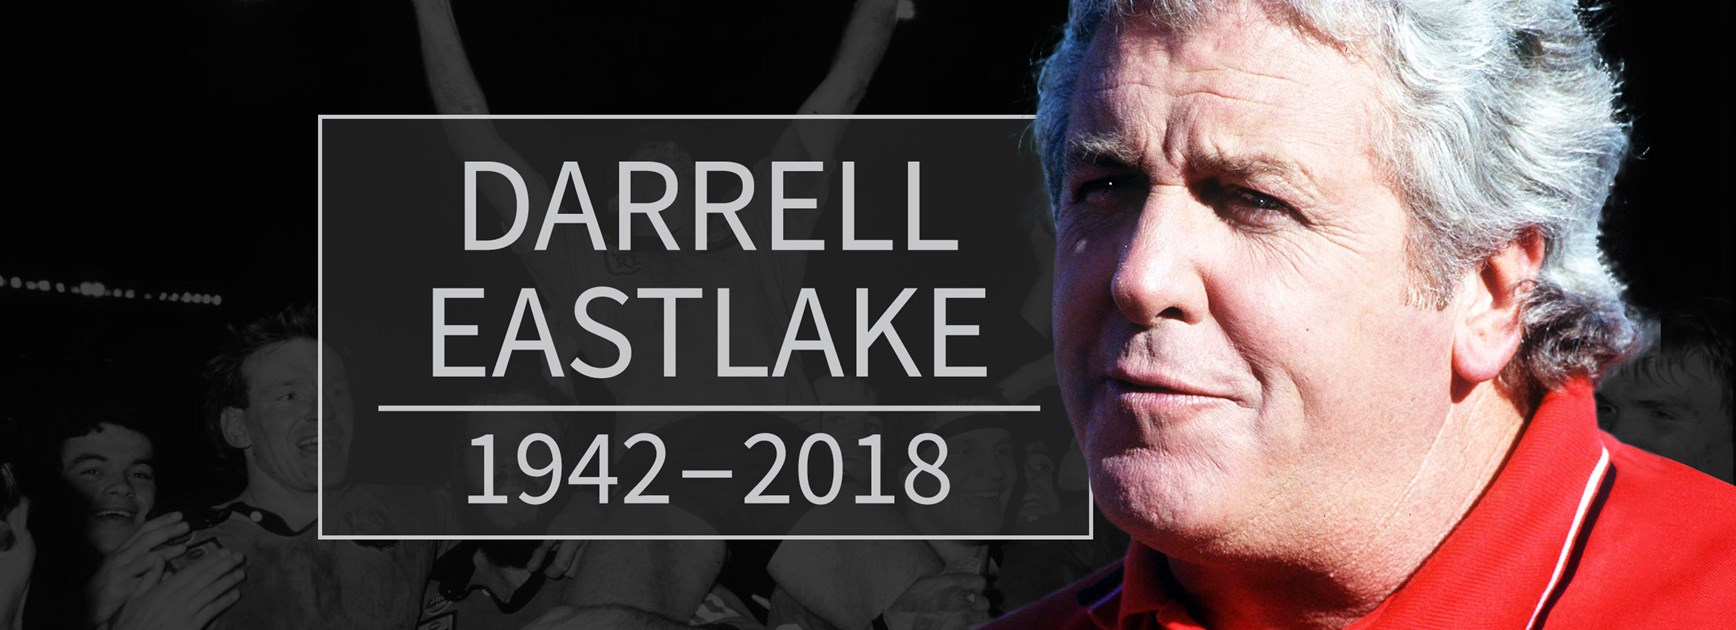 Greats pay tribute to the late Darrell Eastlake